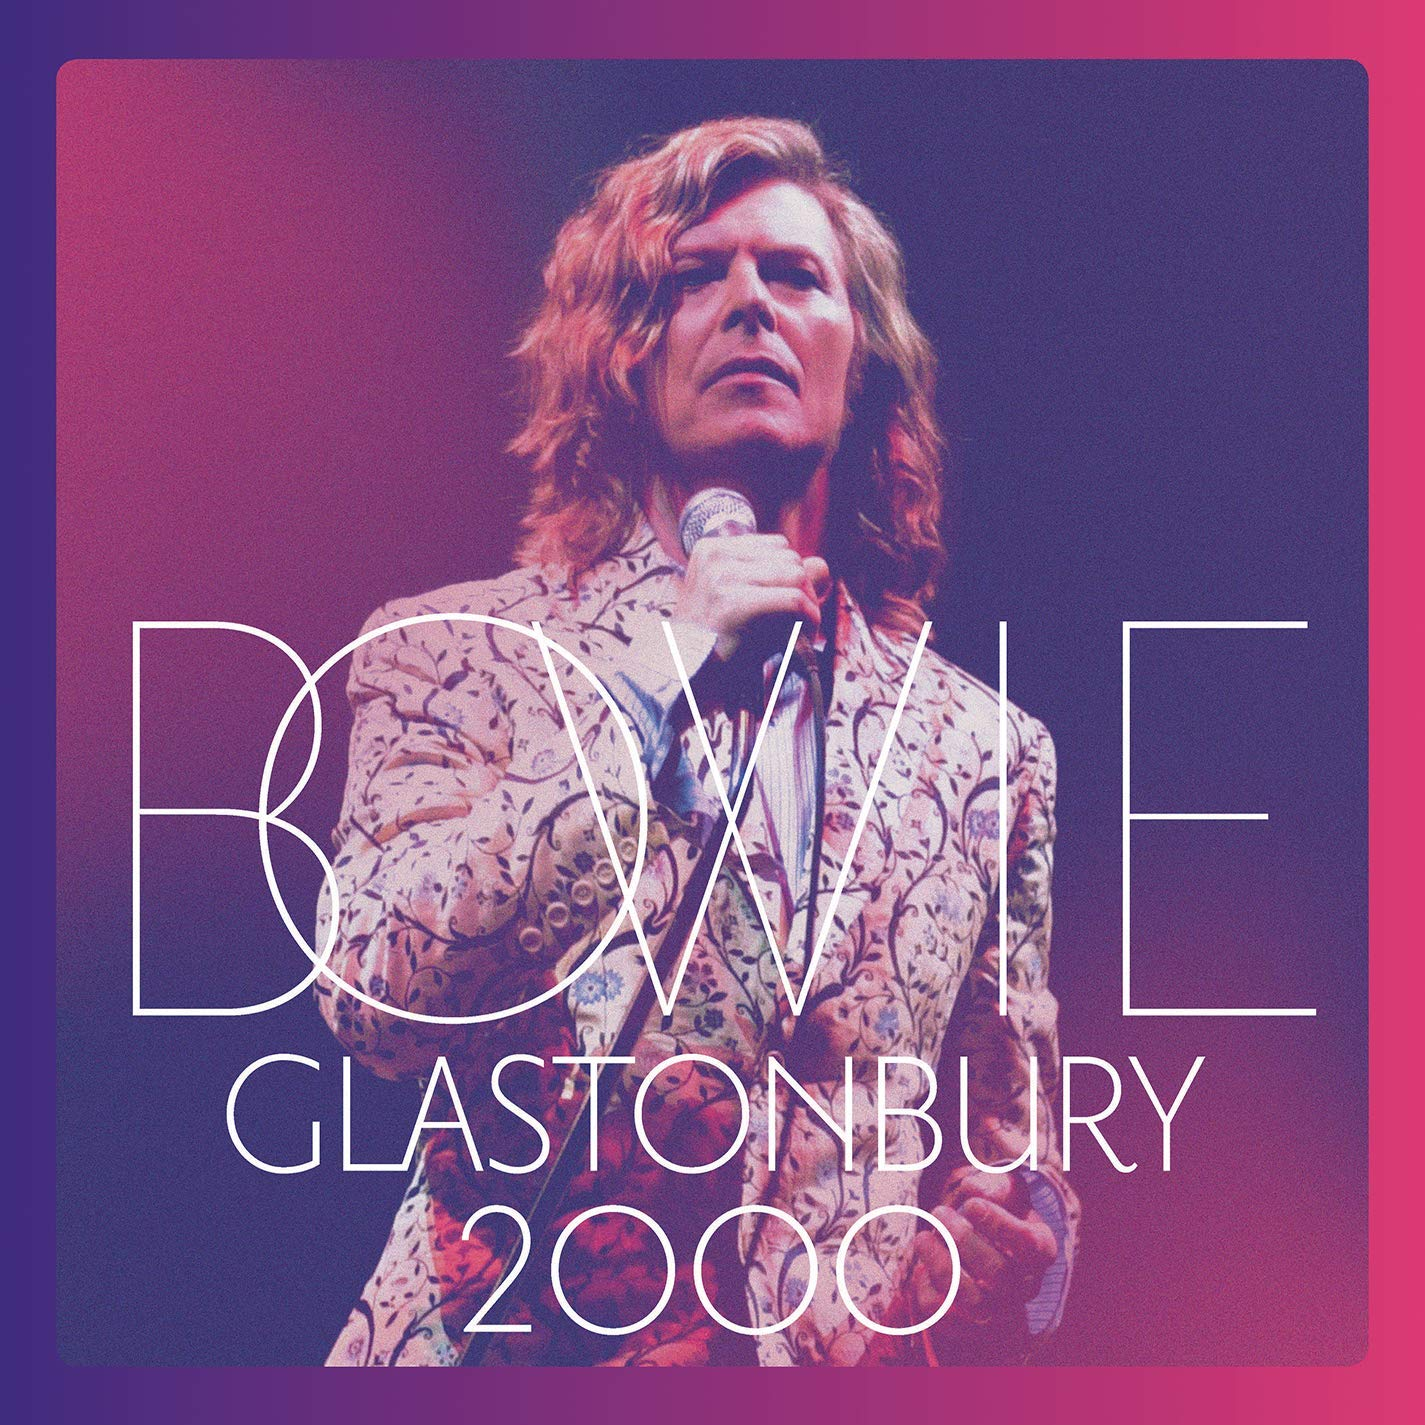 DAVID BOWIE - GLASTONBURY 2000 -2CD (CD)